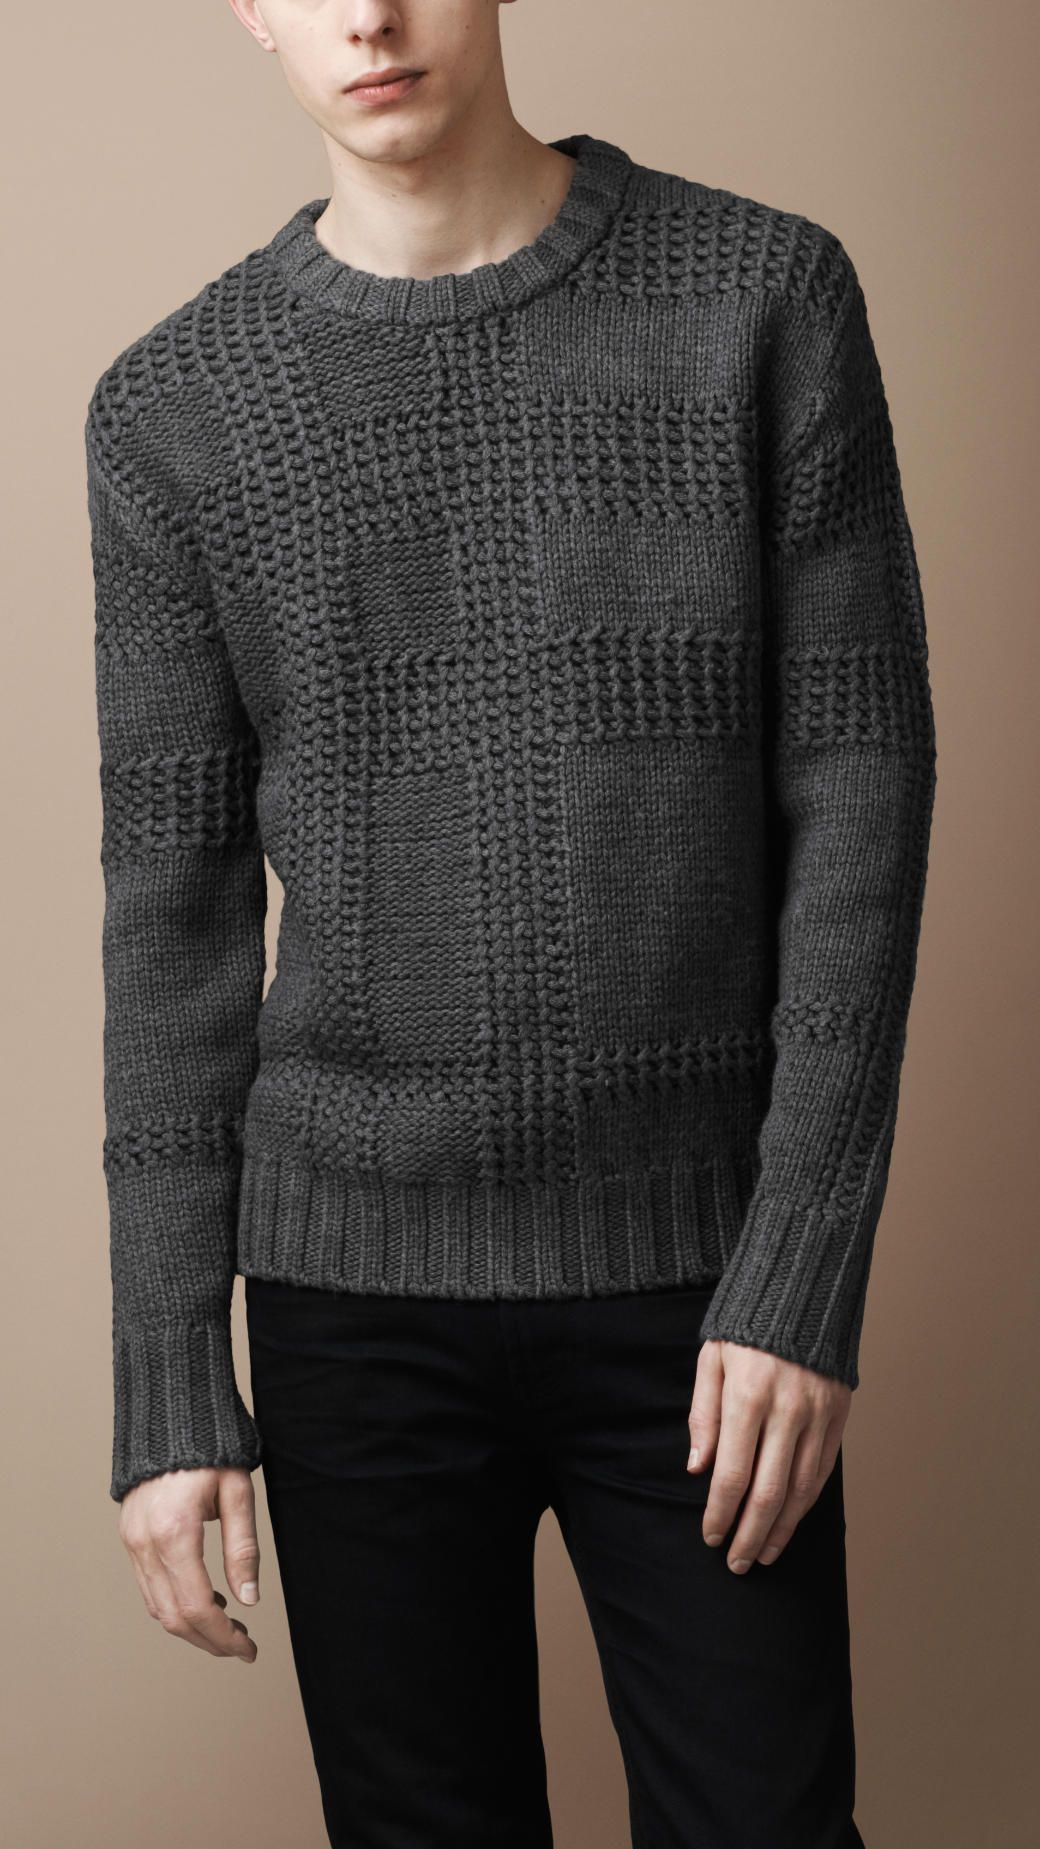 Men's Knitted Sweaters & Cardigans | Burberry United States